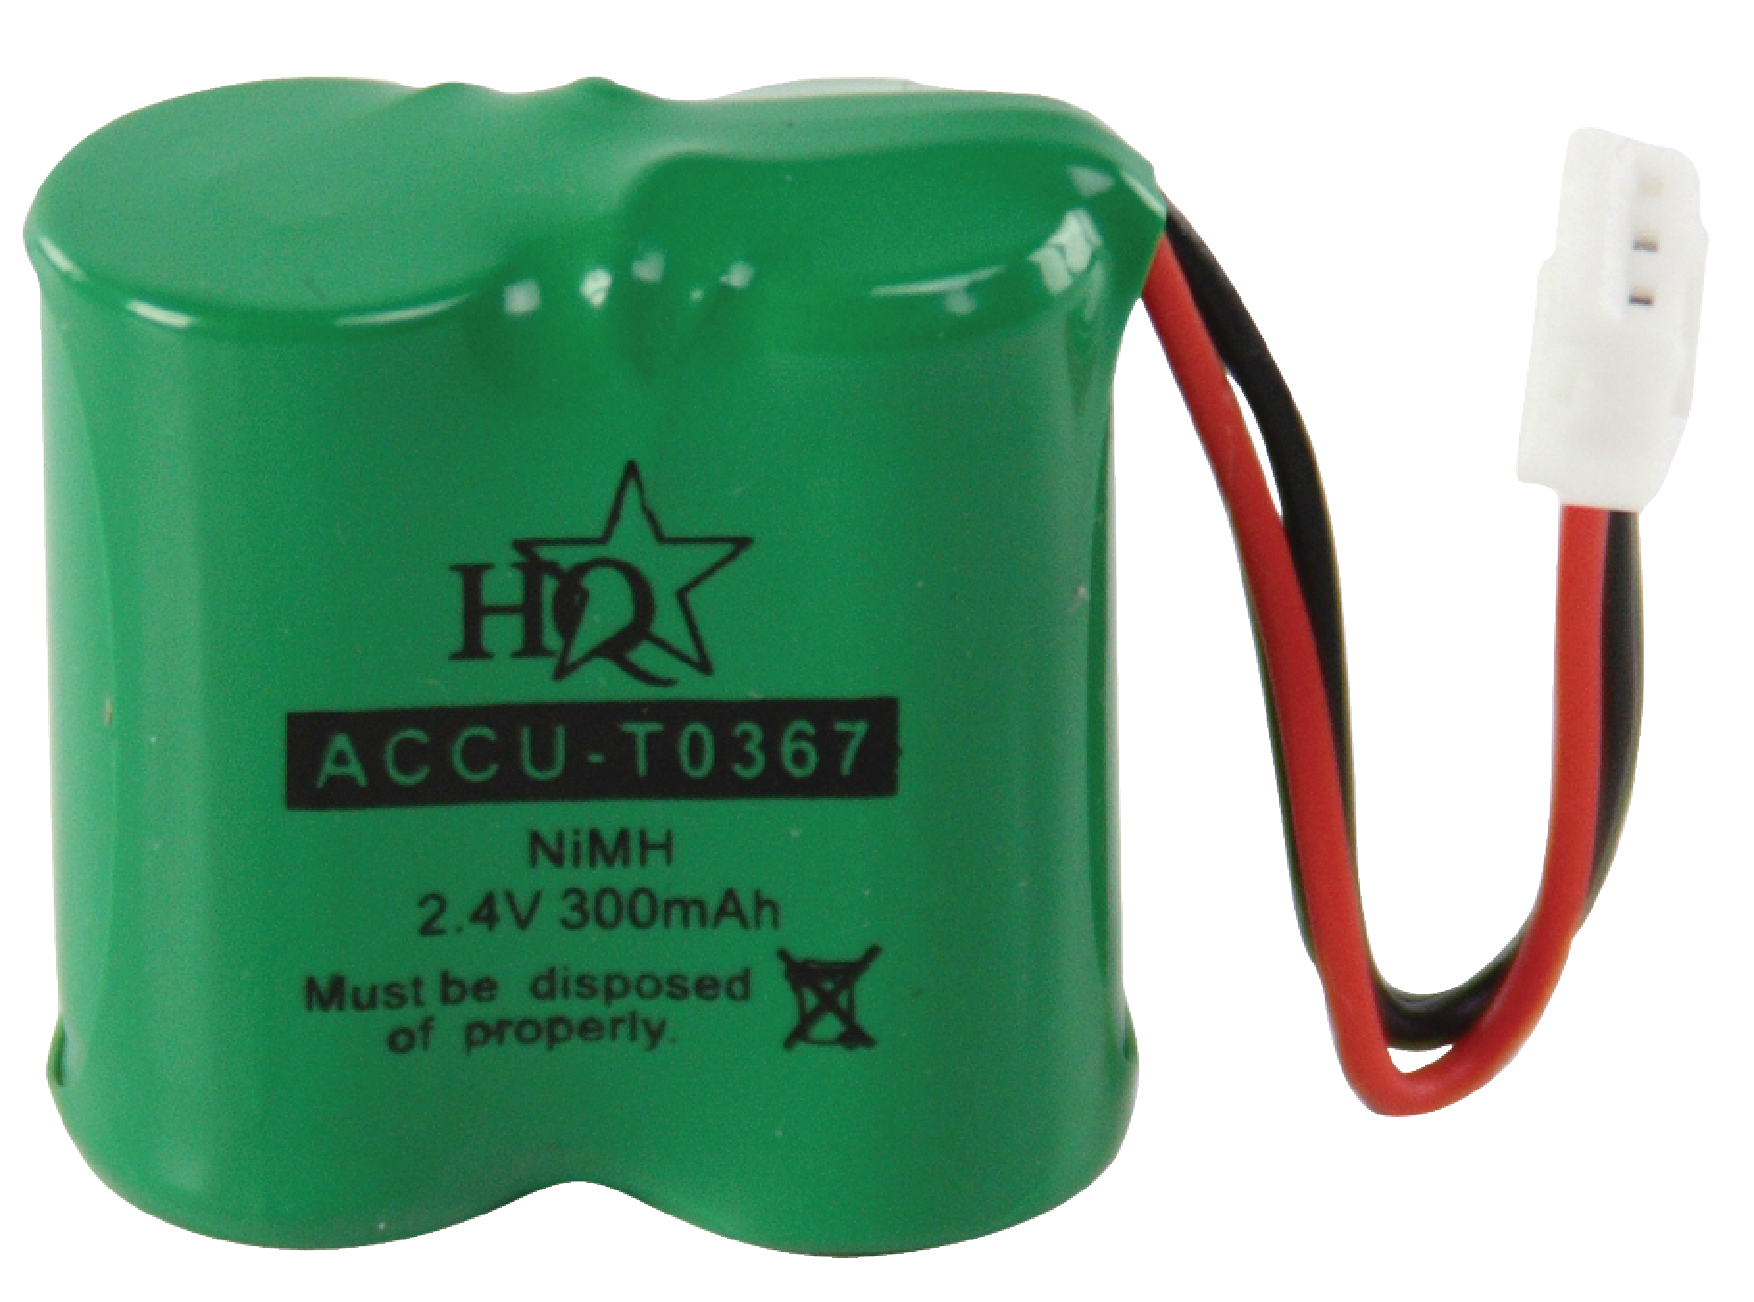 ACCU-T0367 - HQ - Rechargeable NiMH Battery Pack 2.4 V 300